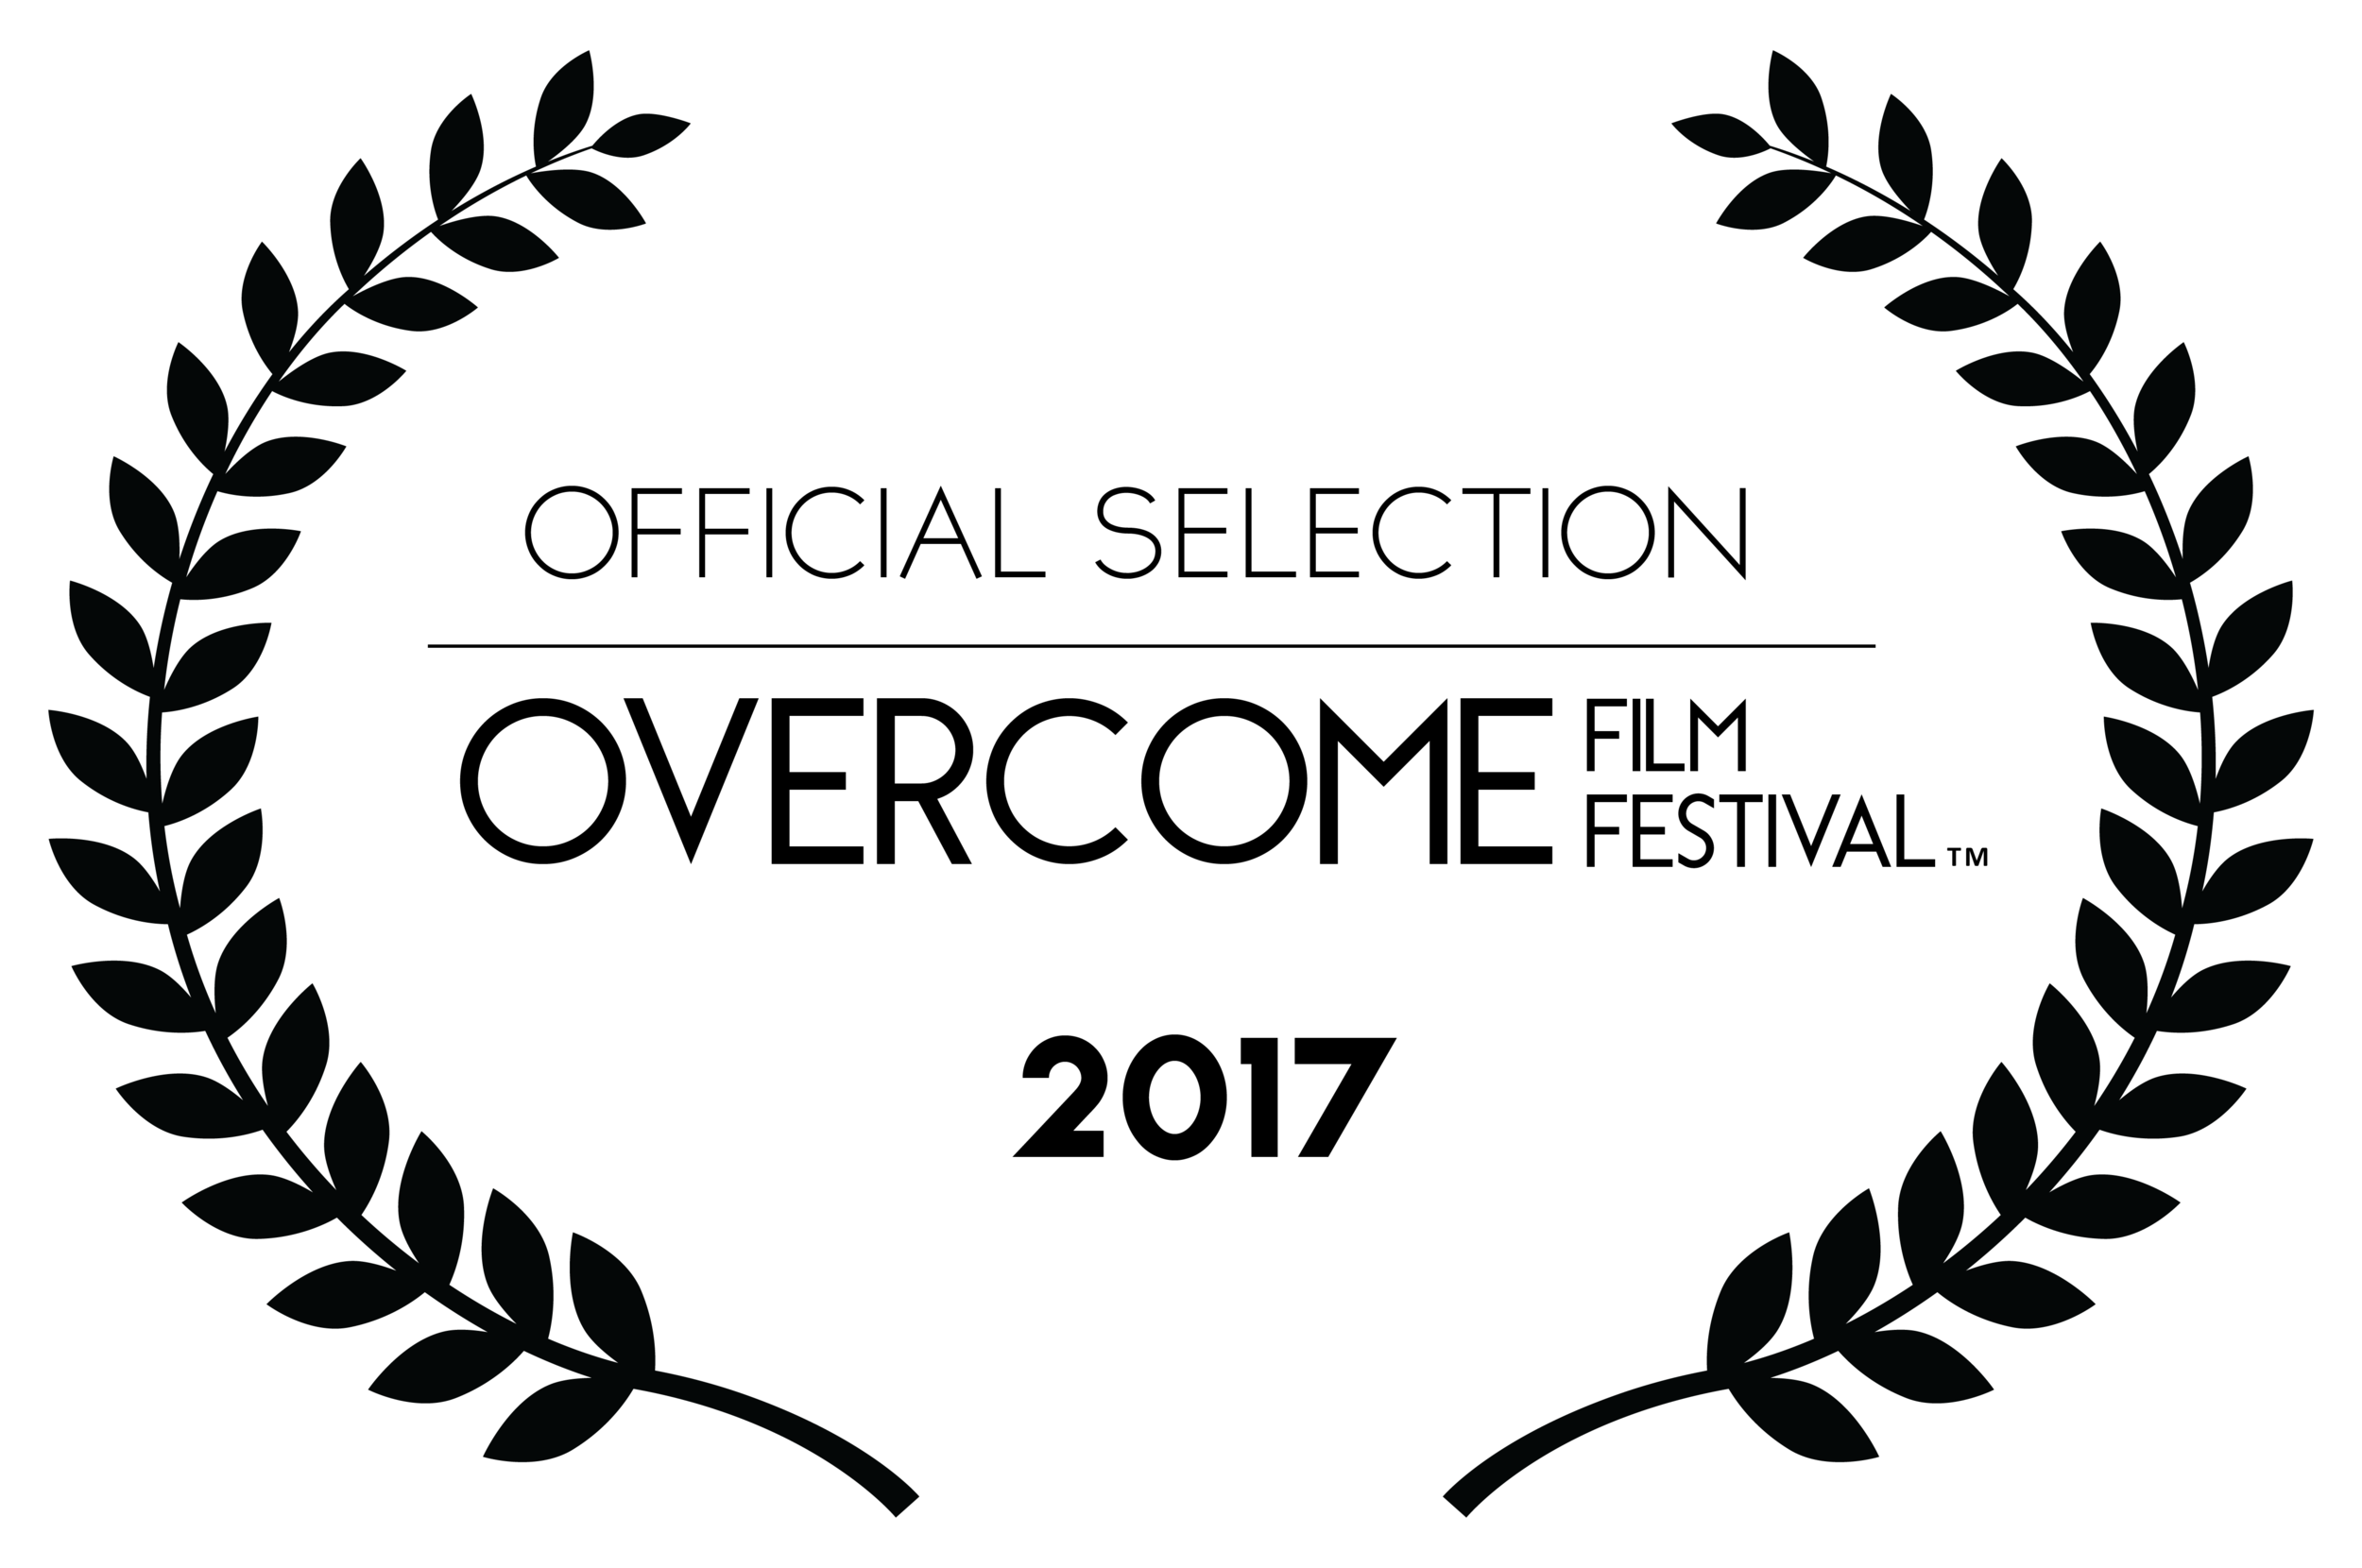 OVERCOME_FILM_FESTIVAL_OFFICIAL_SELECTION_W.png